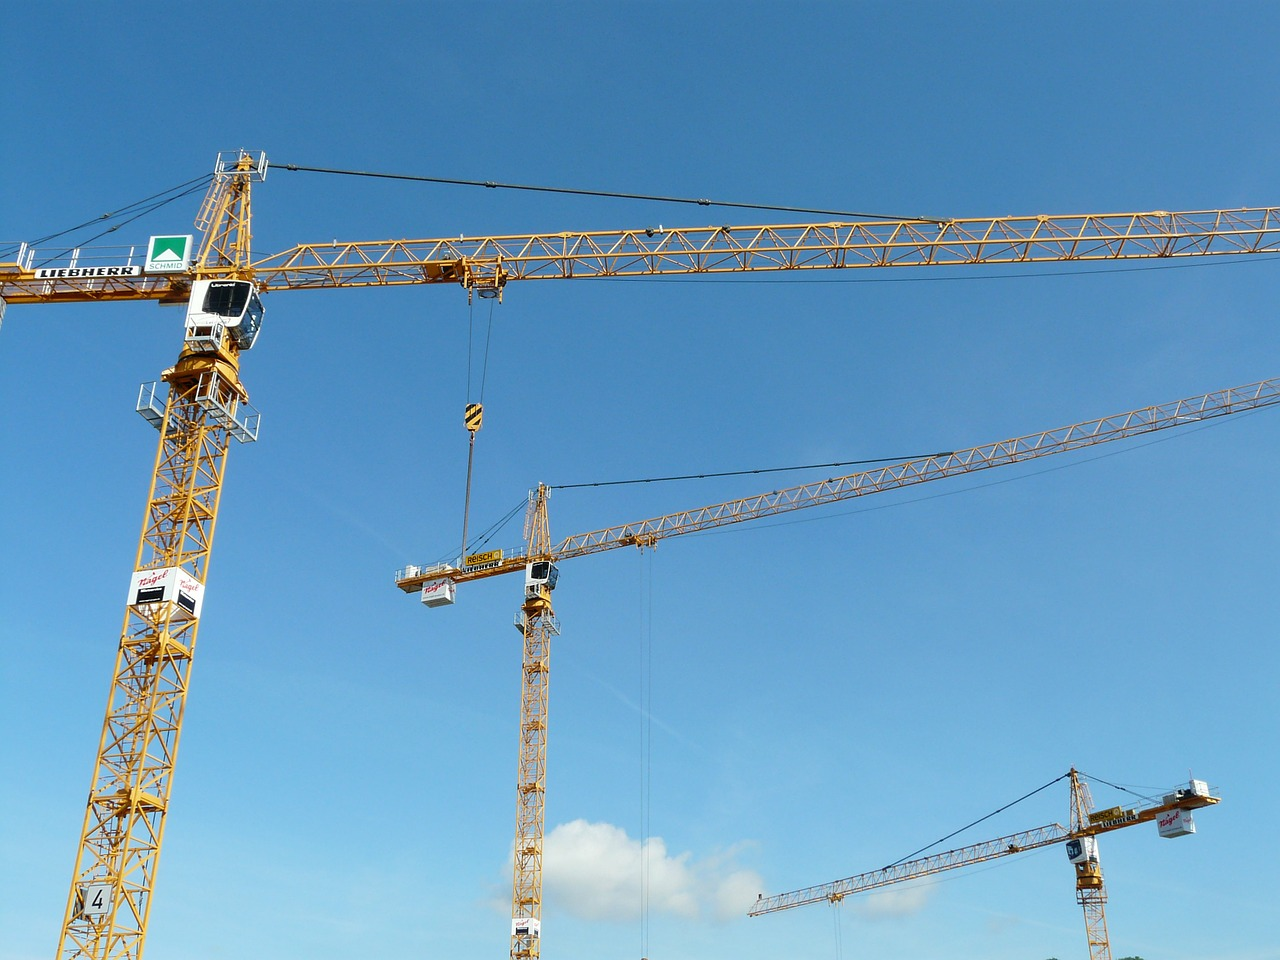 crane,baukran,construction work,sky,technology,site,build,free pictures, free photos, free images, royalty free, free illustrations, public domain